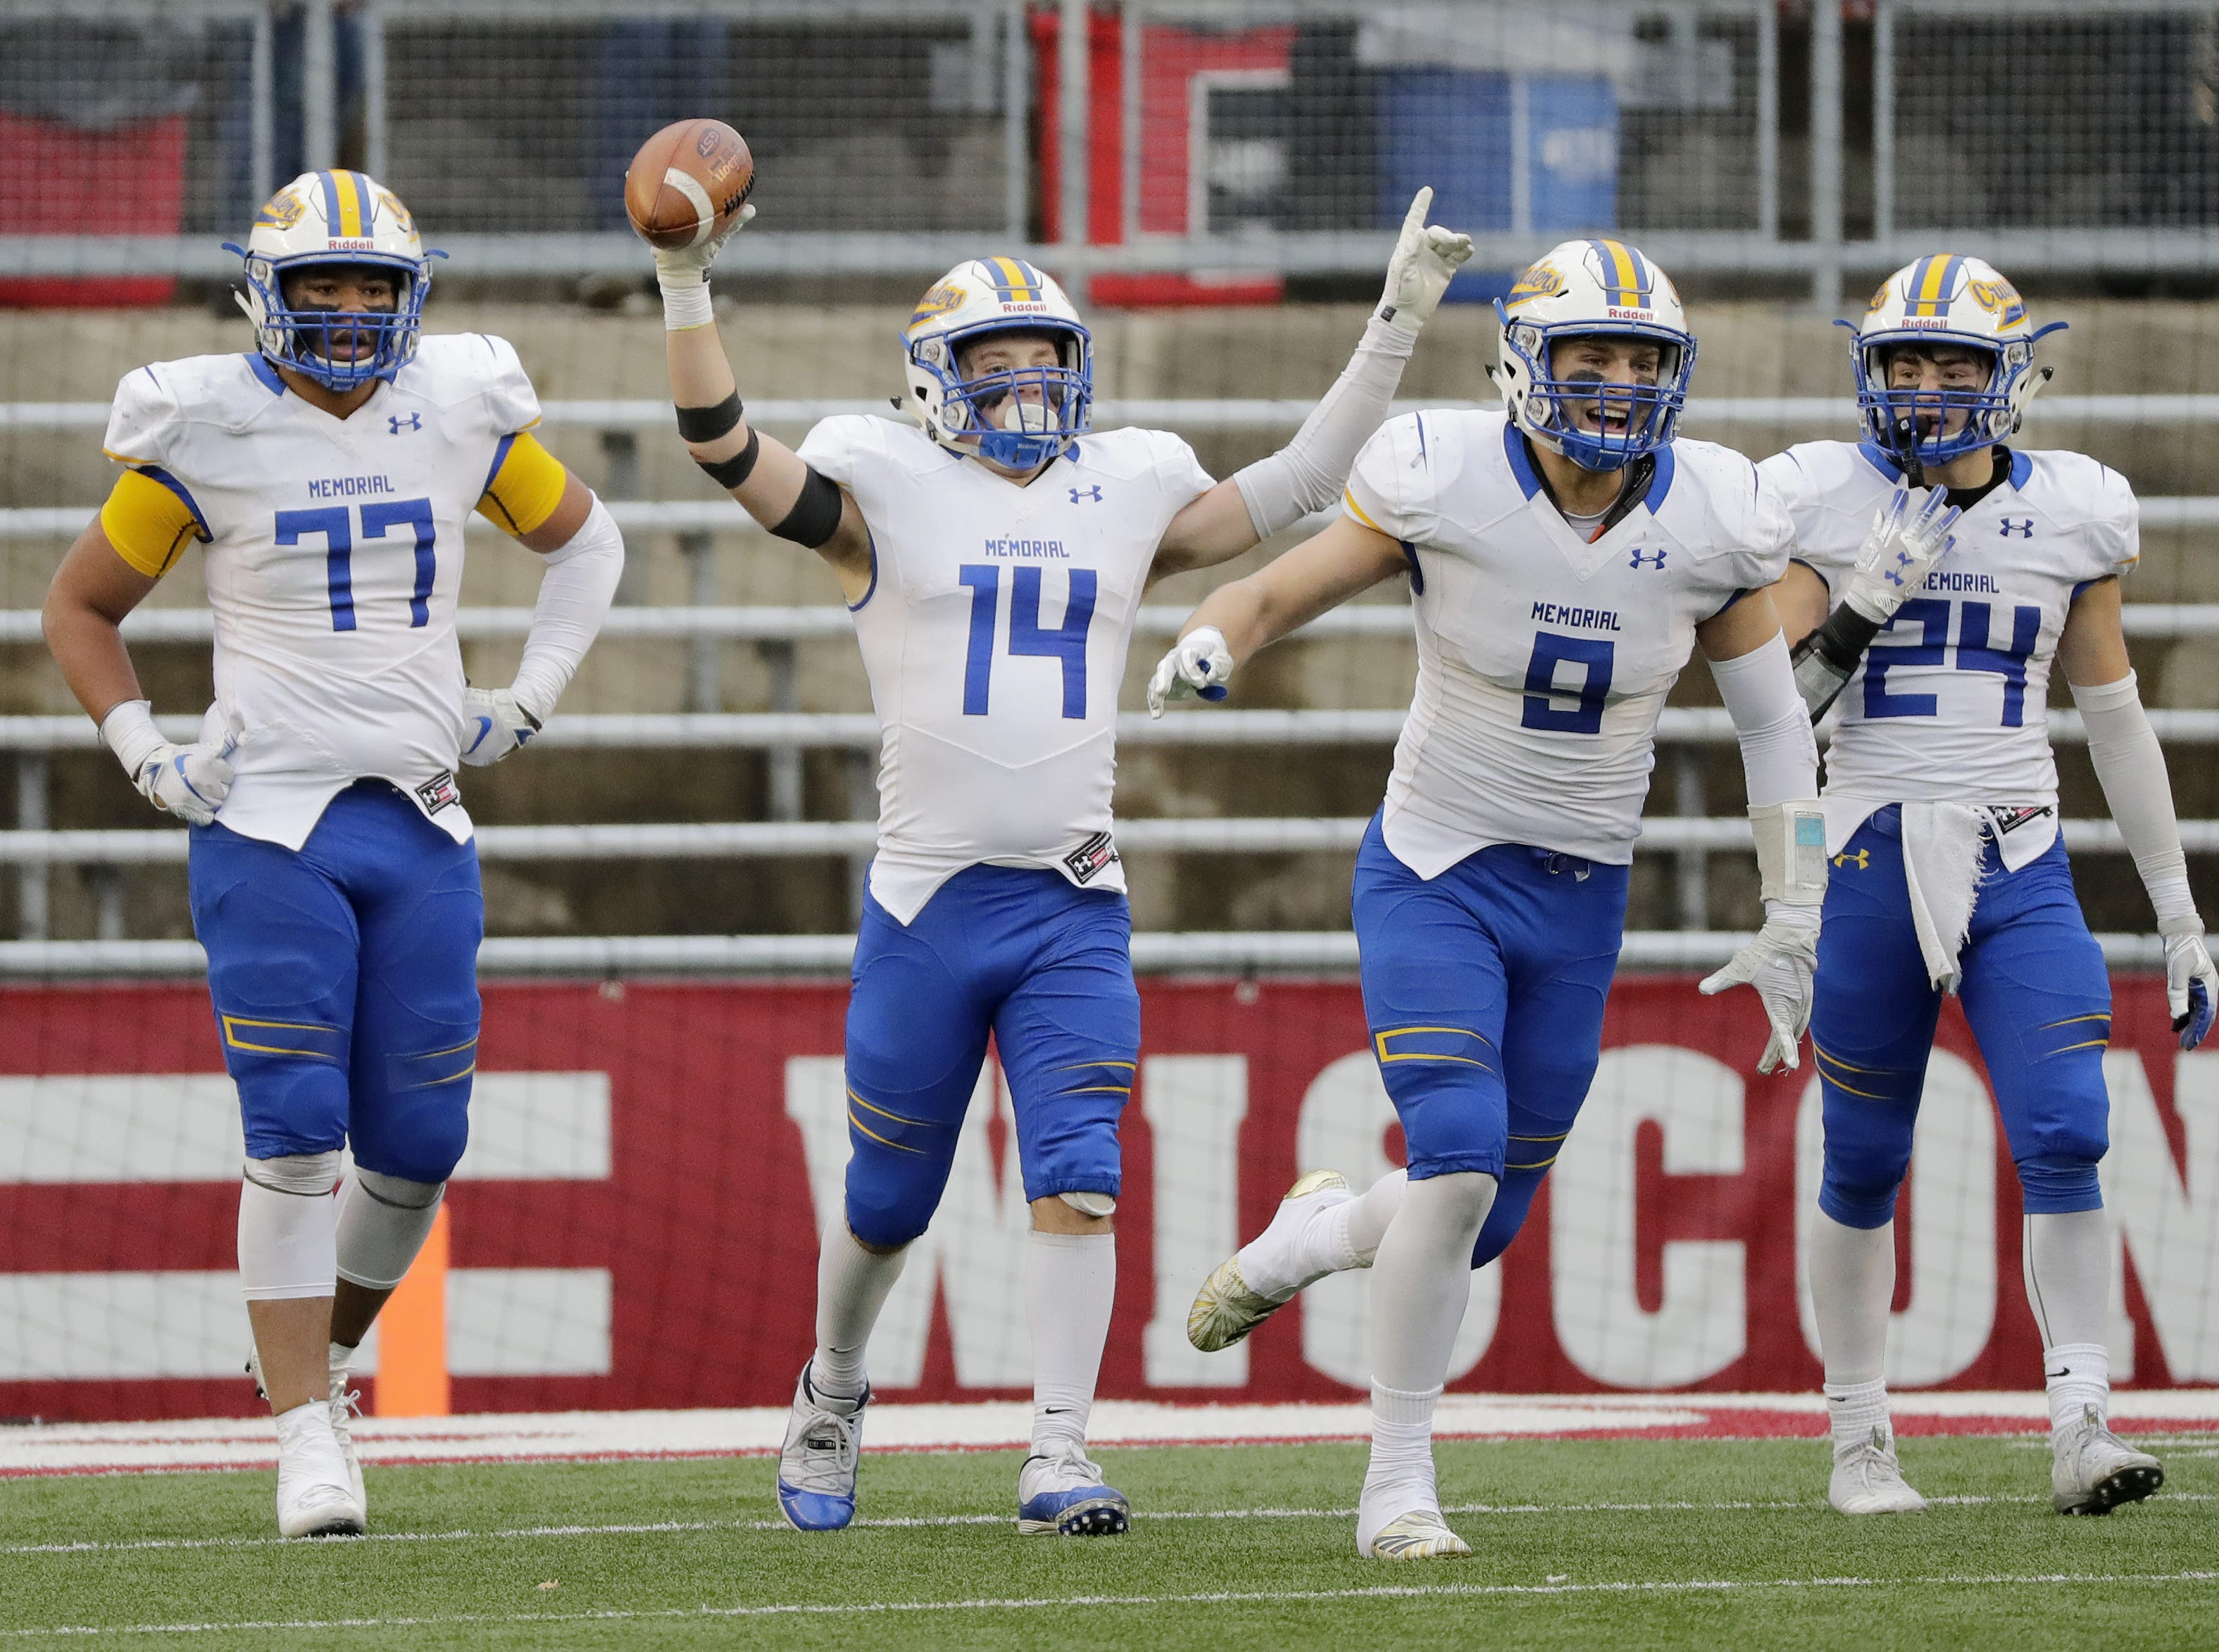 Catholic Memorial players celebrate after scoring a touchdown in the fourth quarter against West De Pere in the WIAA Division 3 championship game at Camp Randall Stadium on Friday, November 16, 2018 in Madison, Wis.